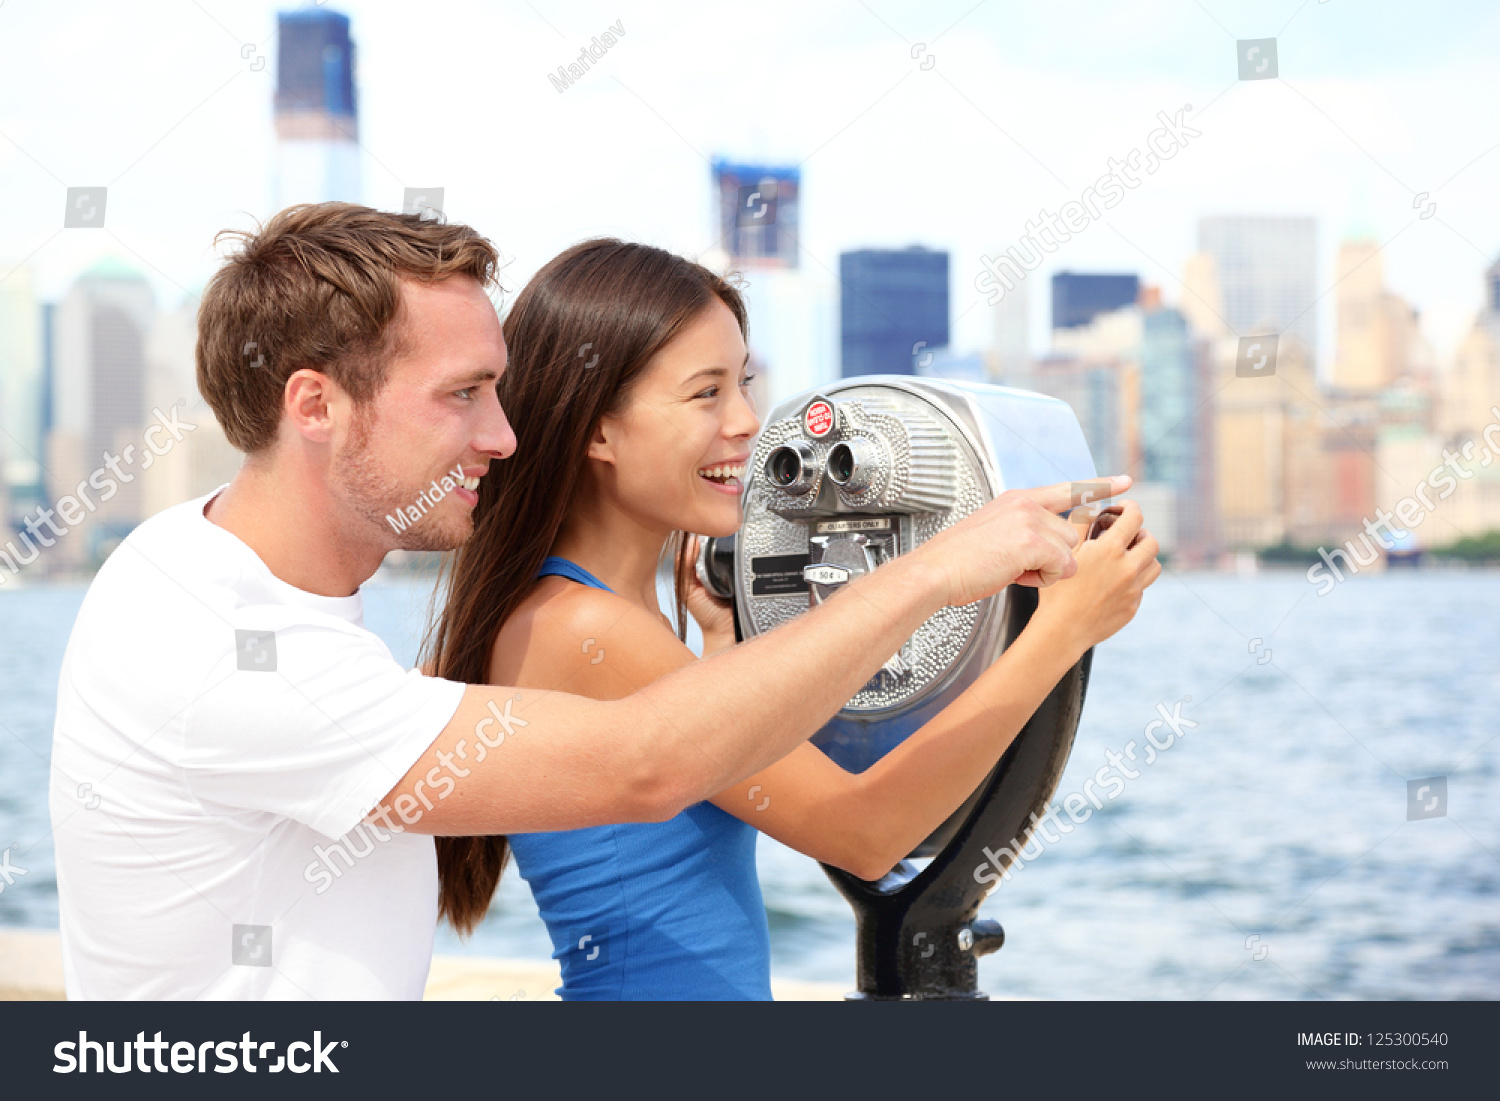 Interracial dating new york city